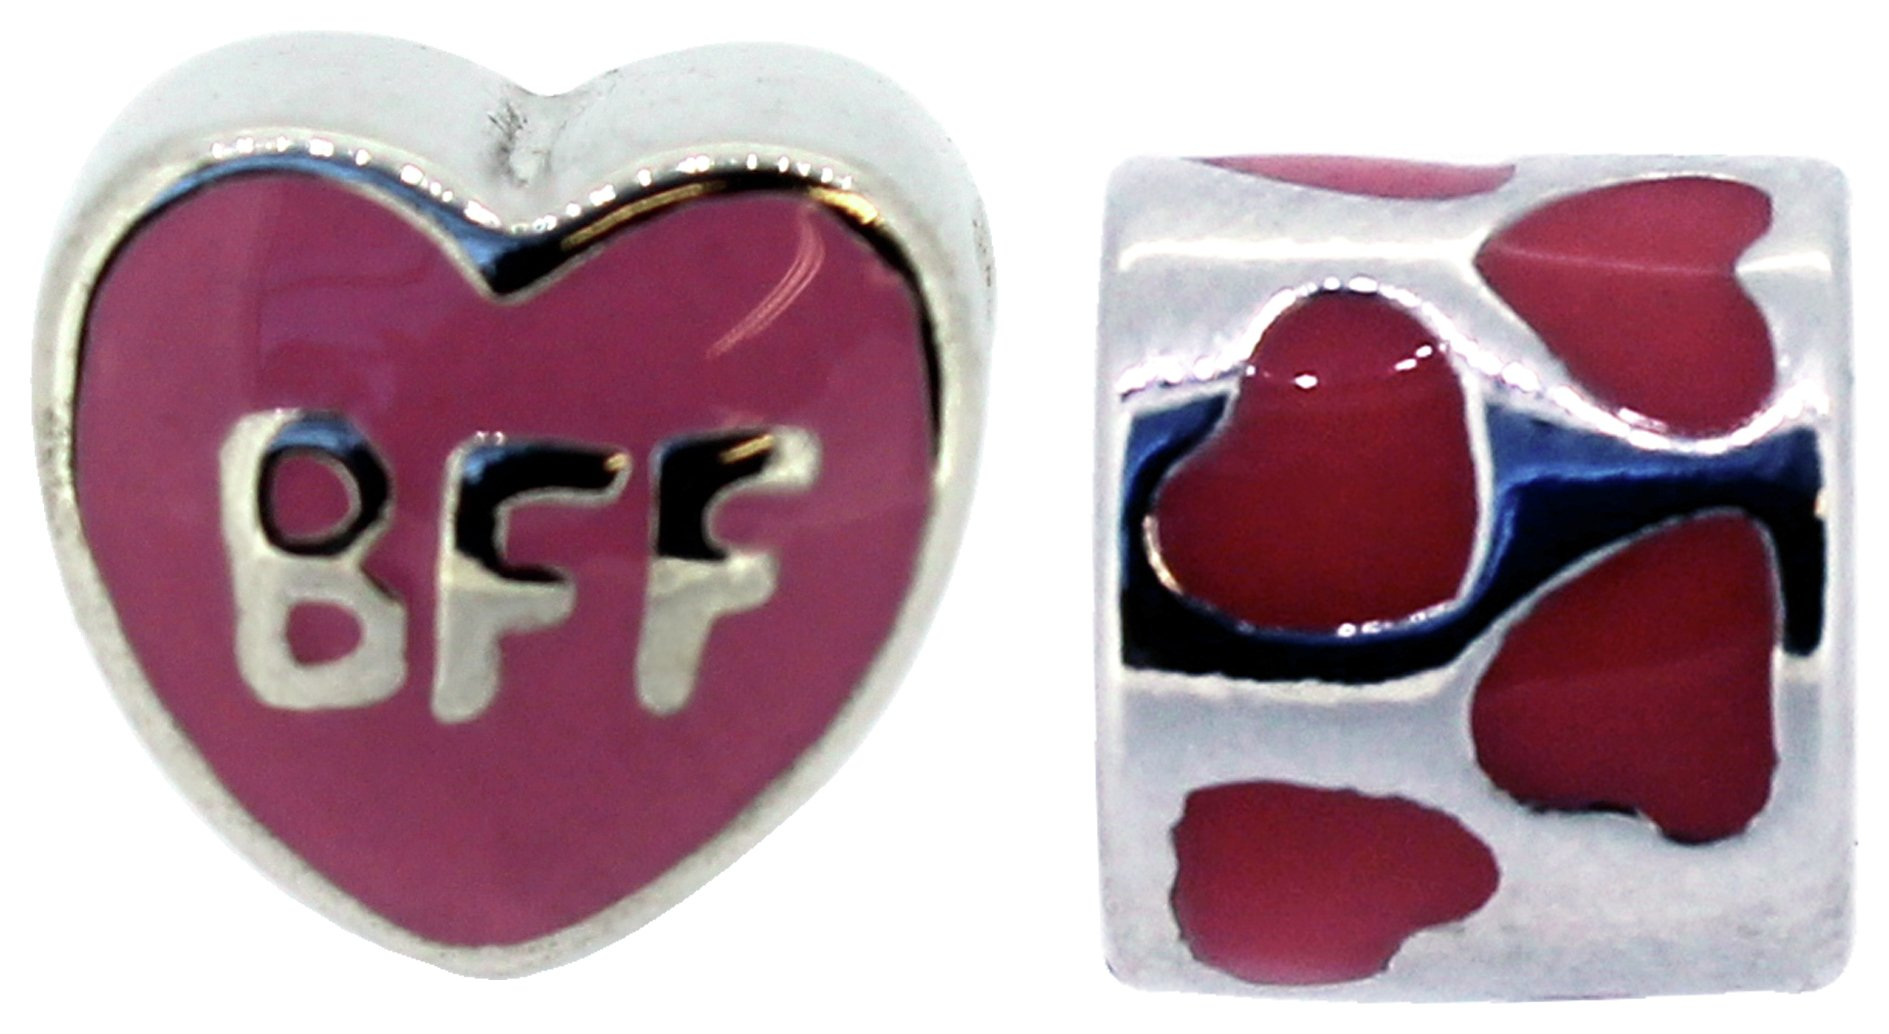 Miss Glitter S.Silver Kids BFF Enamel Charms - Set of 2.